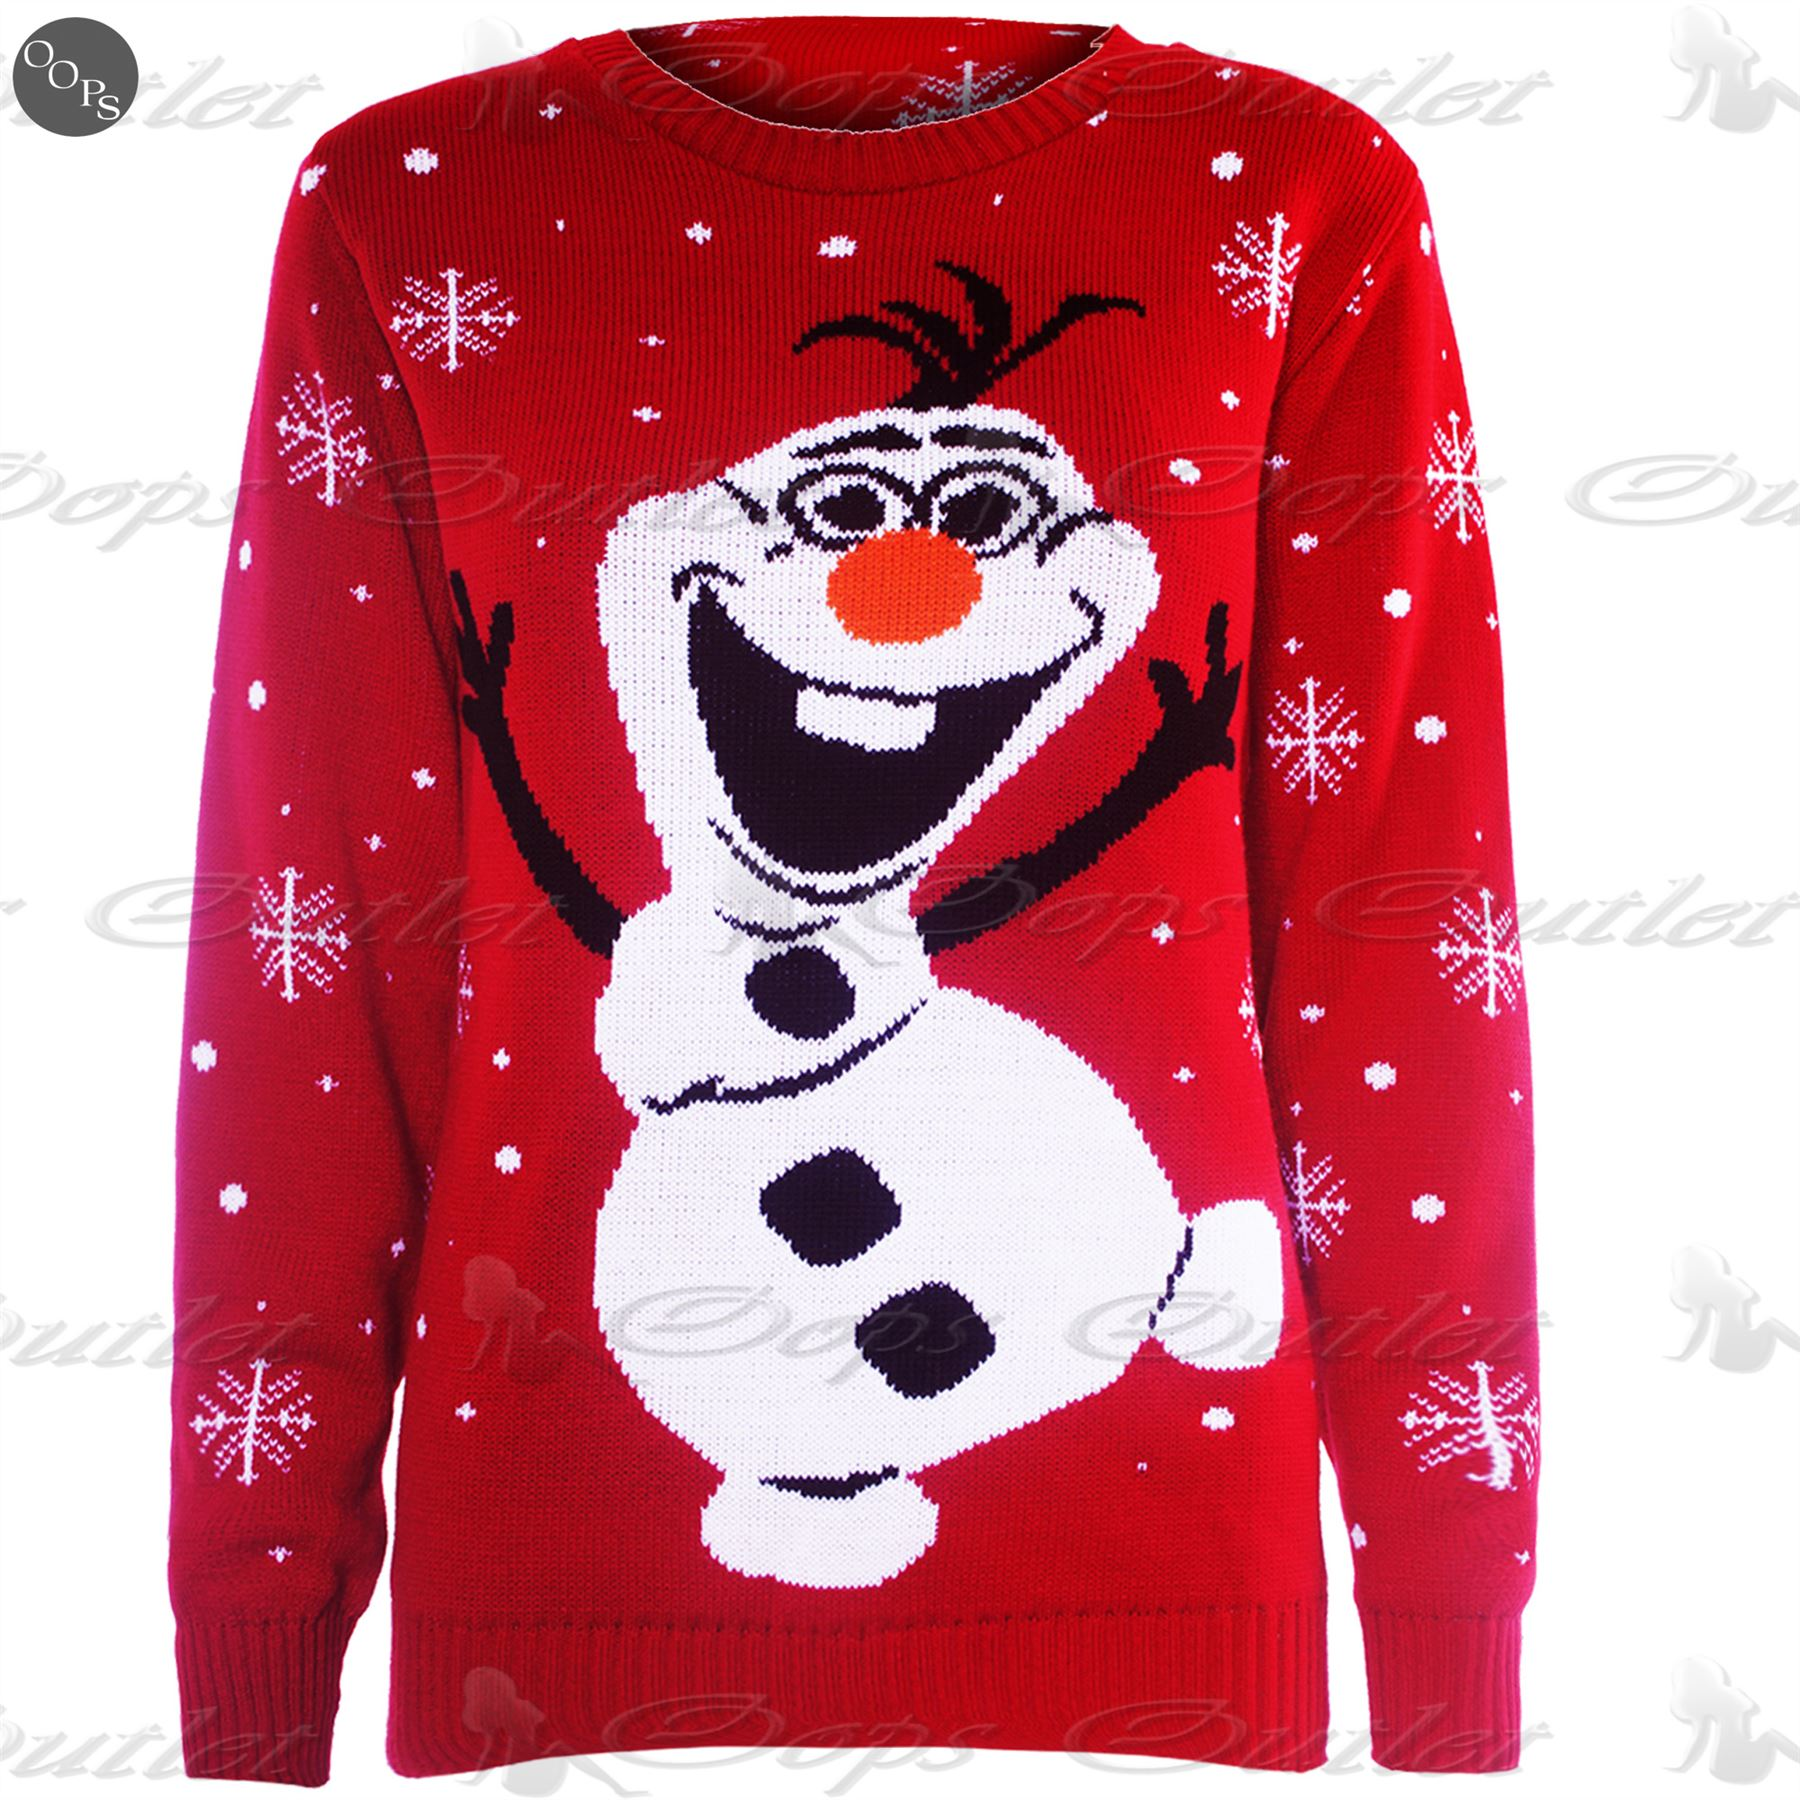 Olaf Christmas Jumper Knitting Pattern : Mens Womens Unisex Knitted Pom Pom Santa Snowman Olaf Christmas Sweater Jumpe...